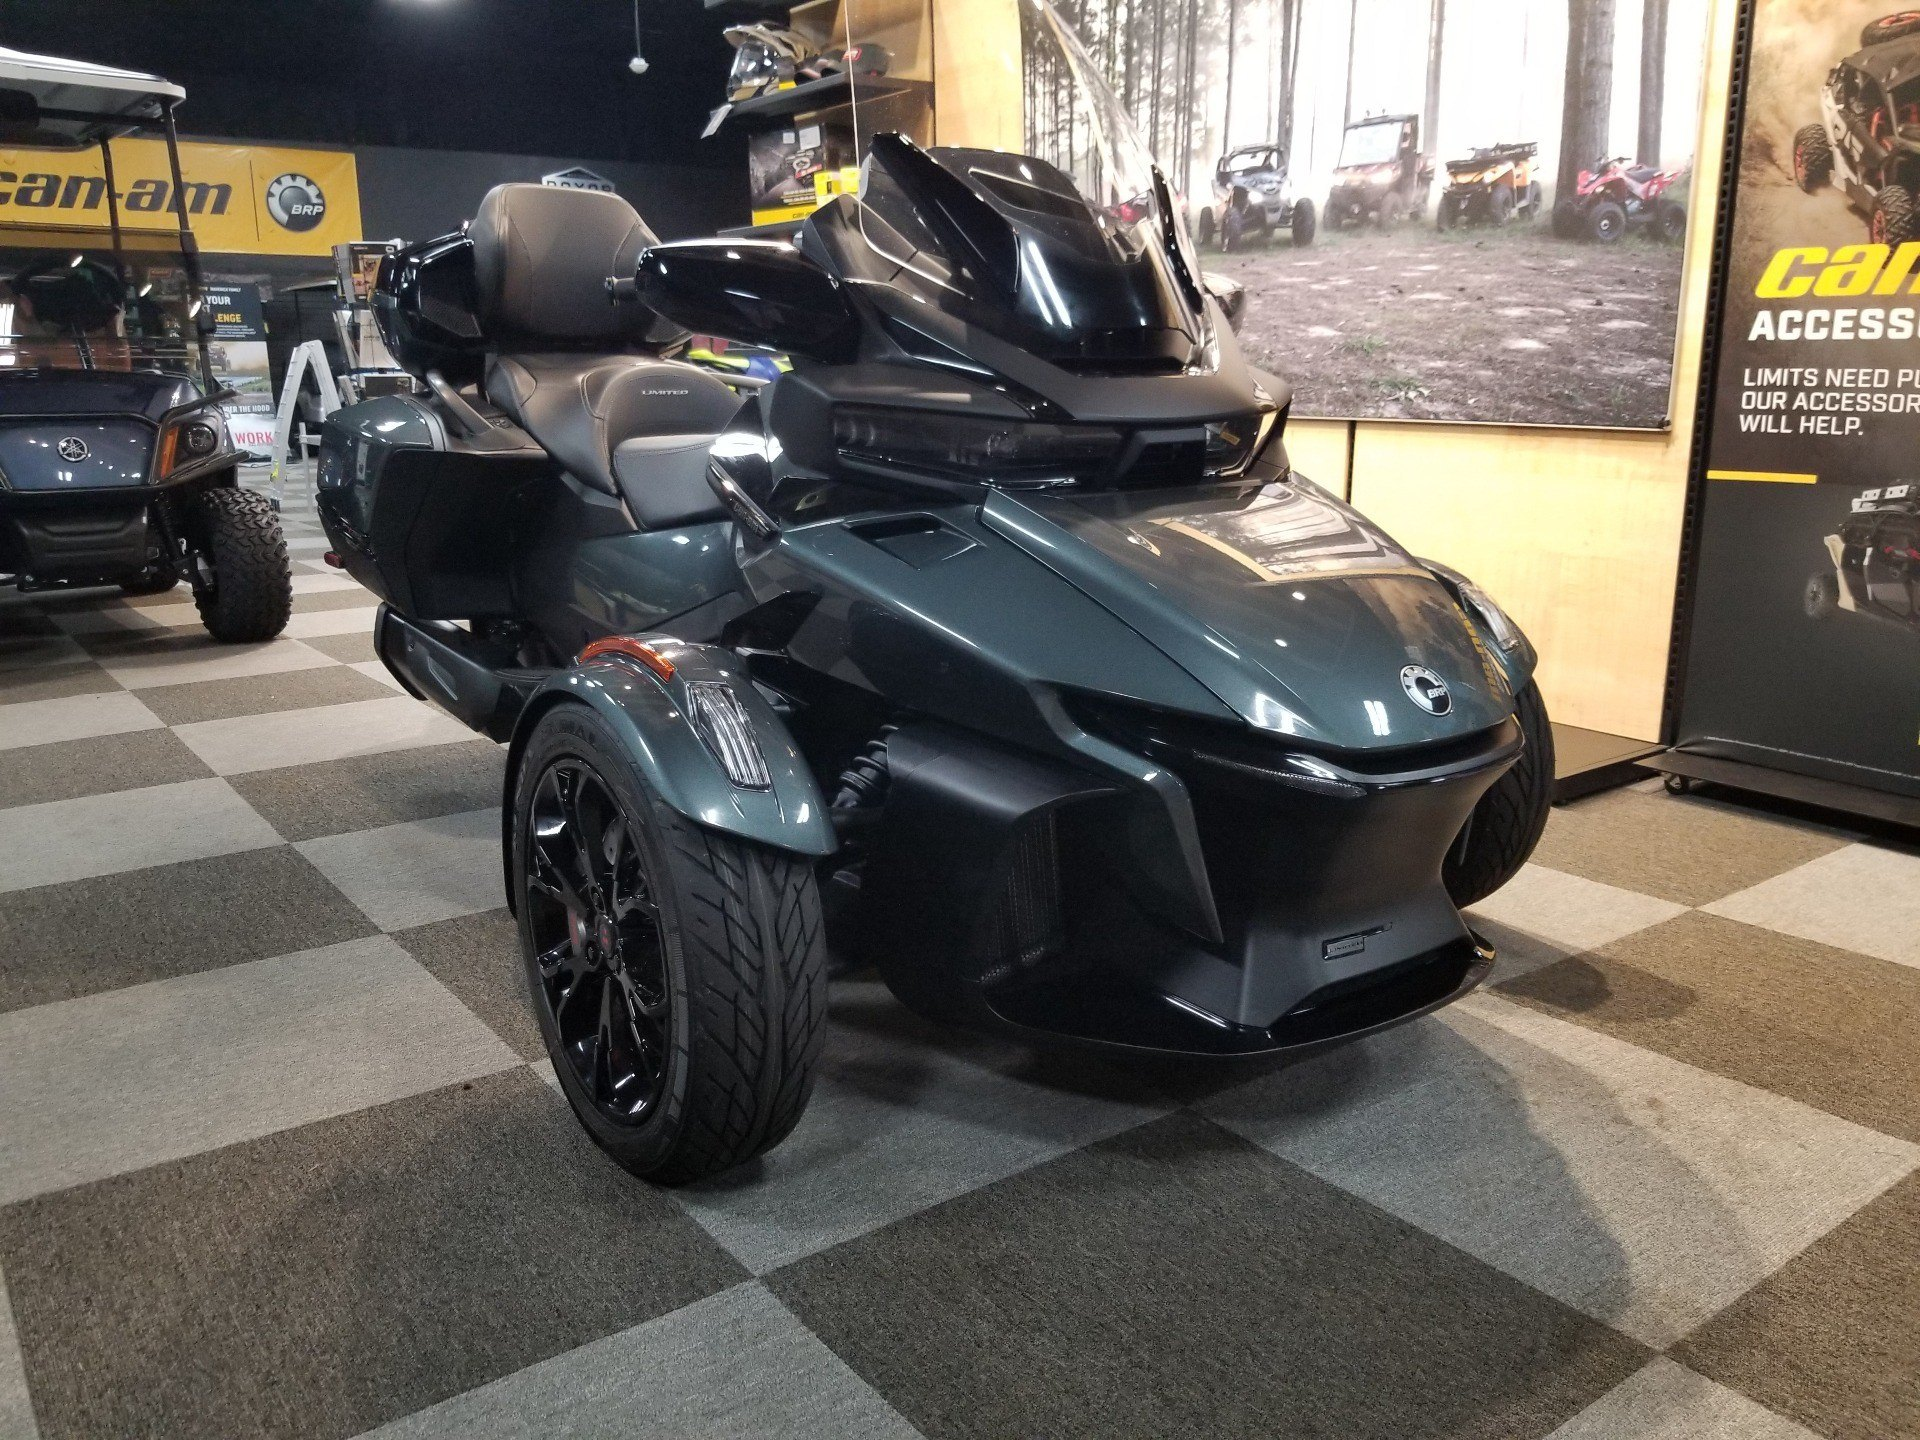 2020 Can-Am Spyder RT Limited in Jesup, Georgia - Photo 4